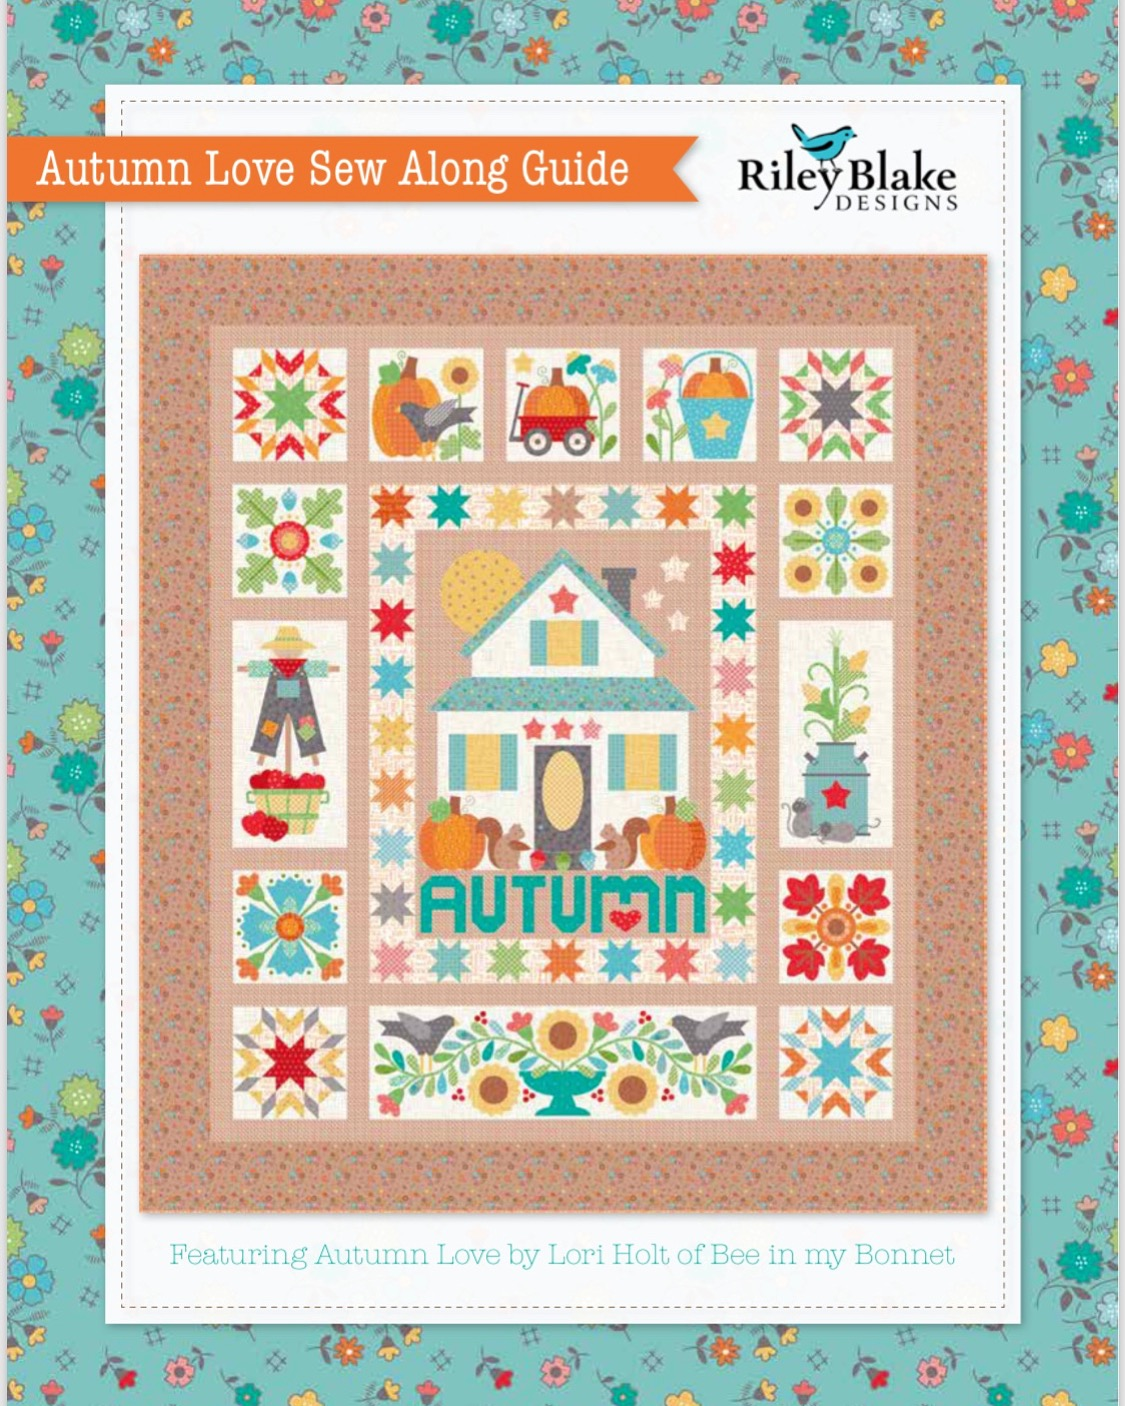 Autumn Love Sew Along